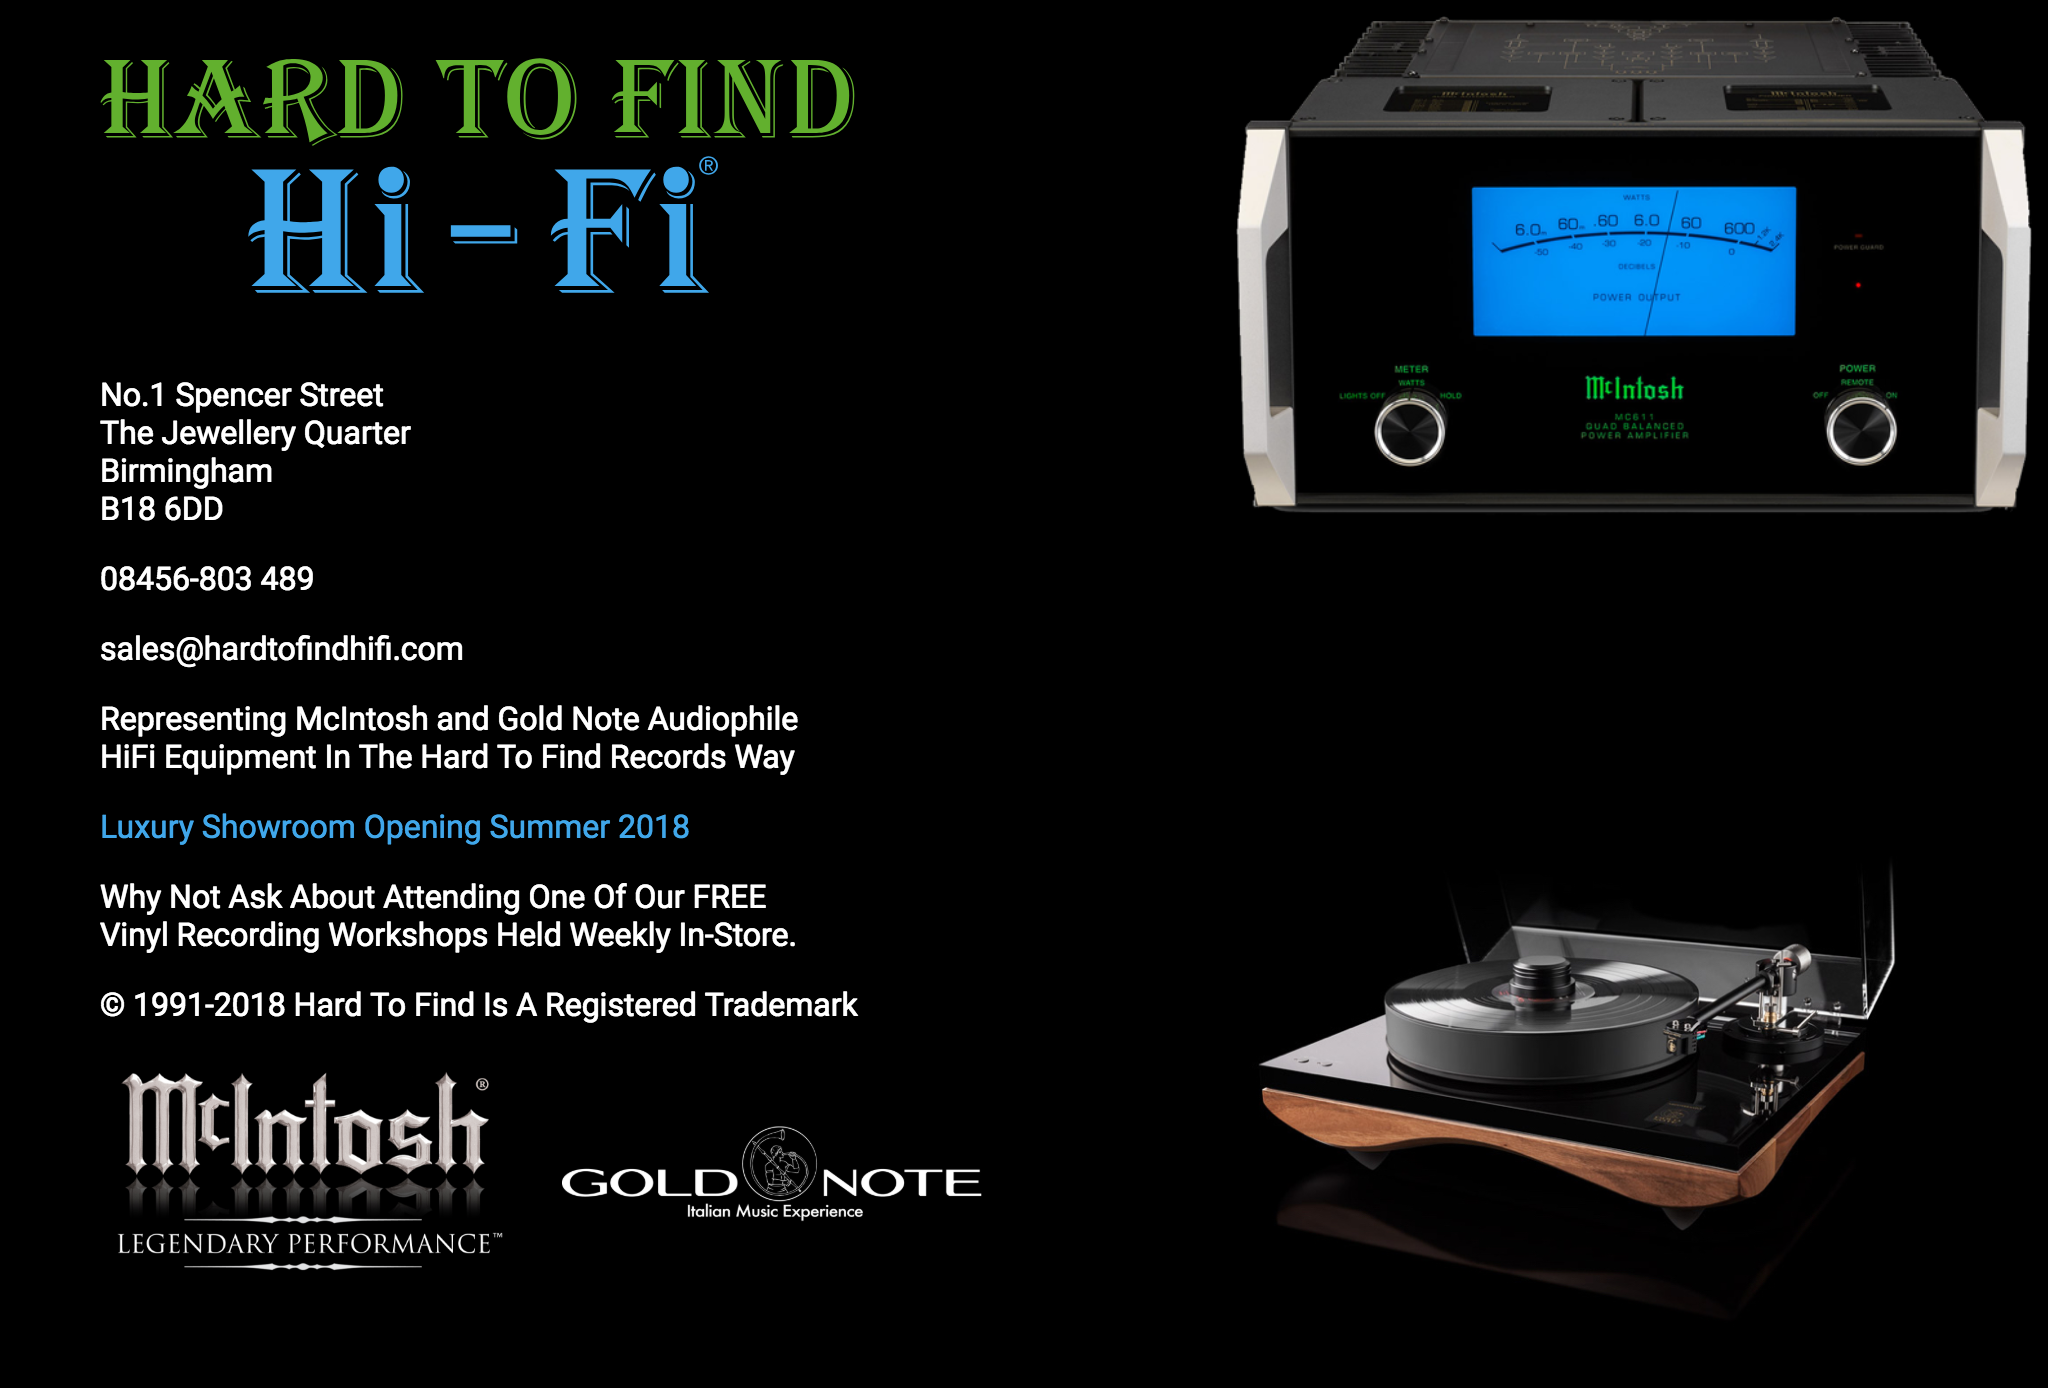 Hard To Find Hi-Fi